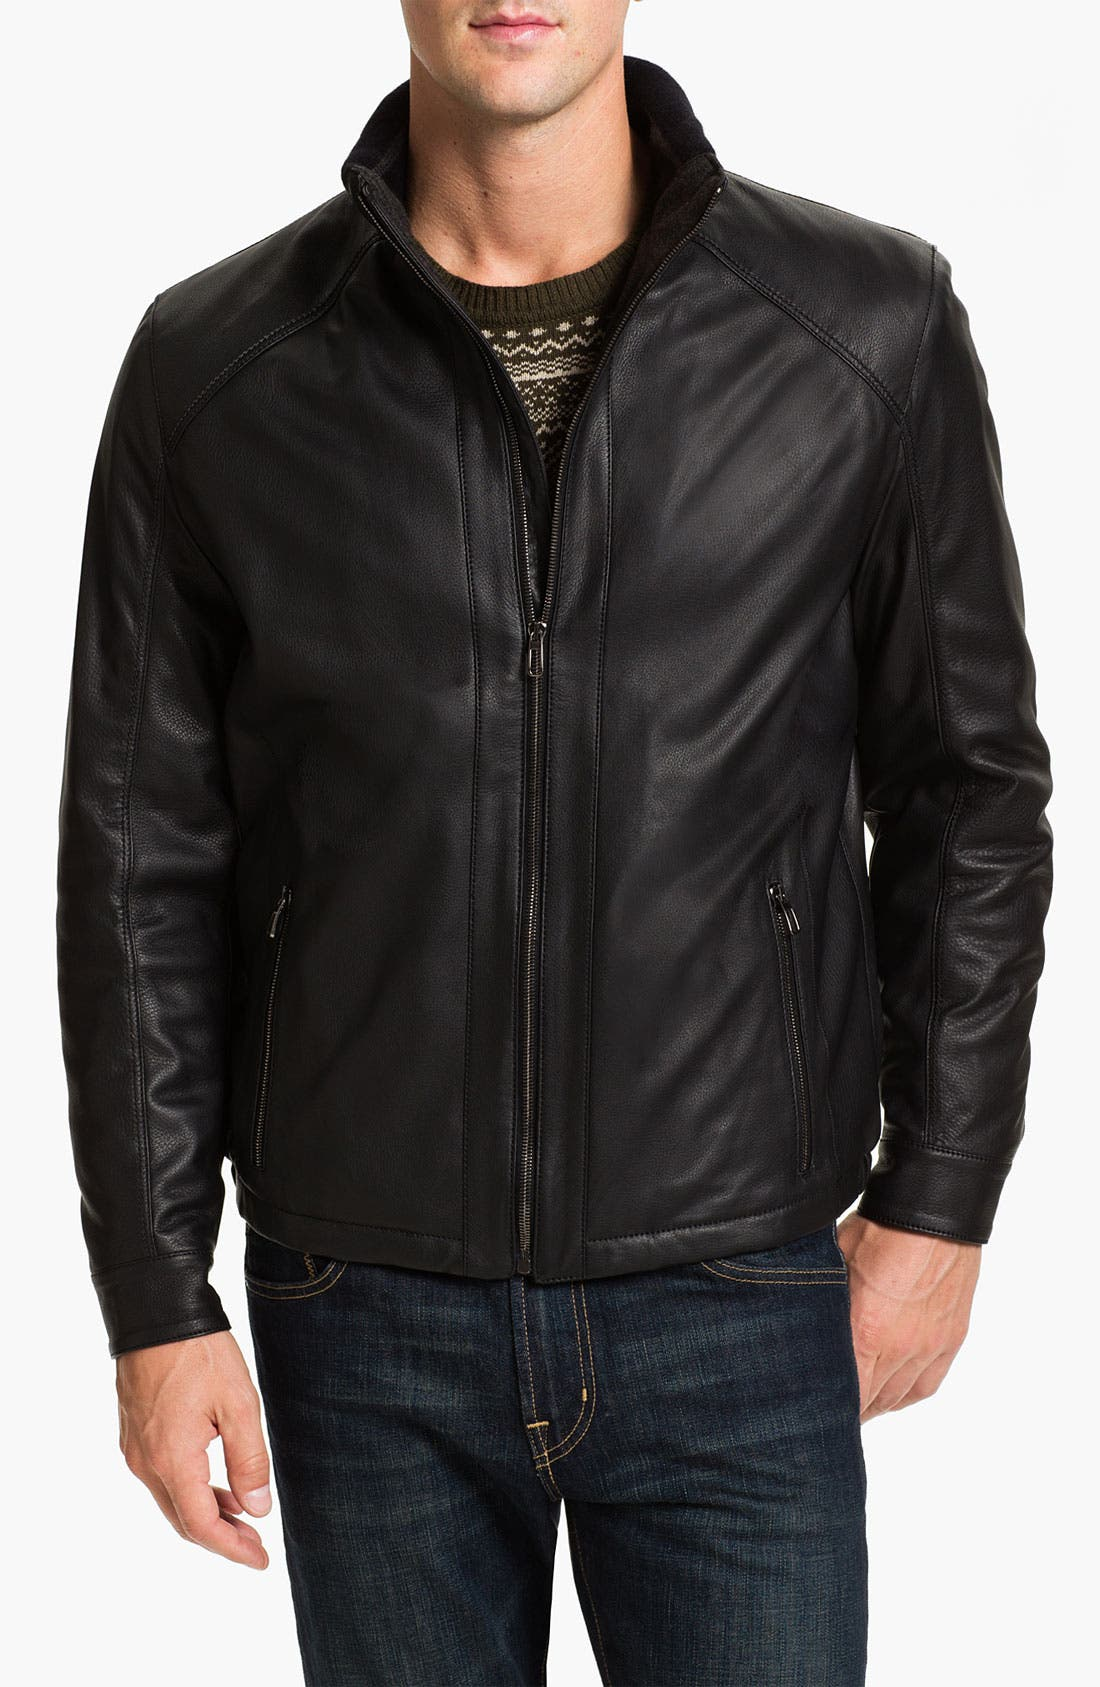 Alternate Image 1 Selected - Gian Franco Pagini Leather Jacket